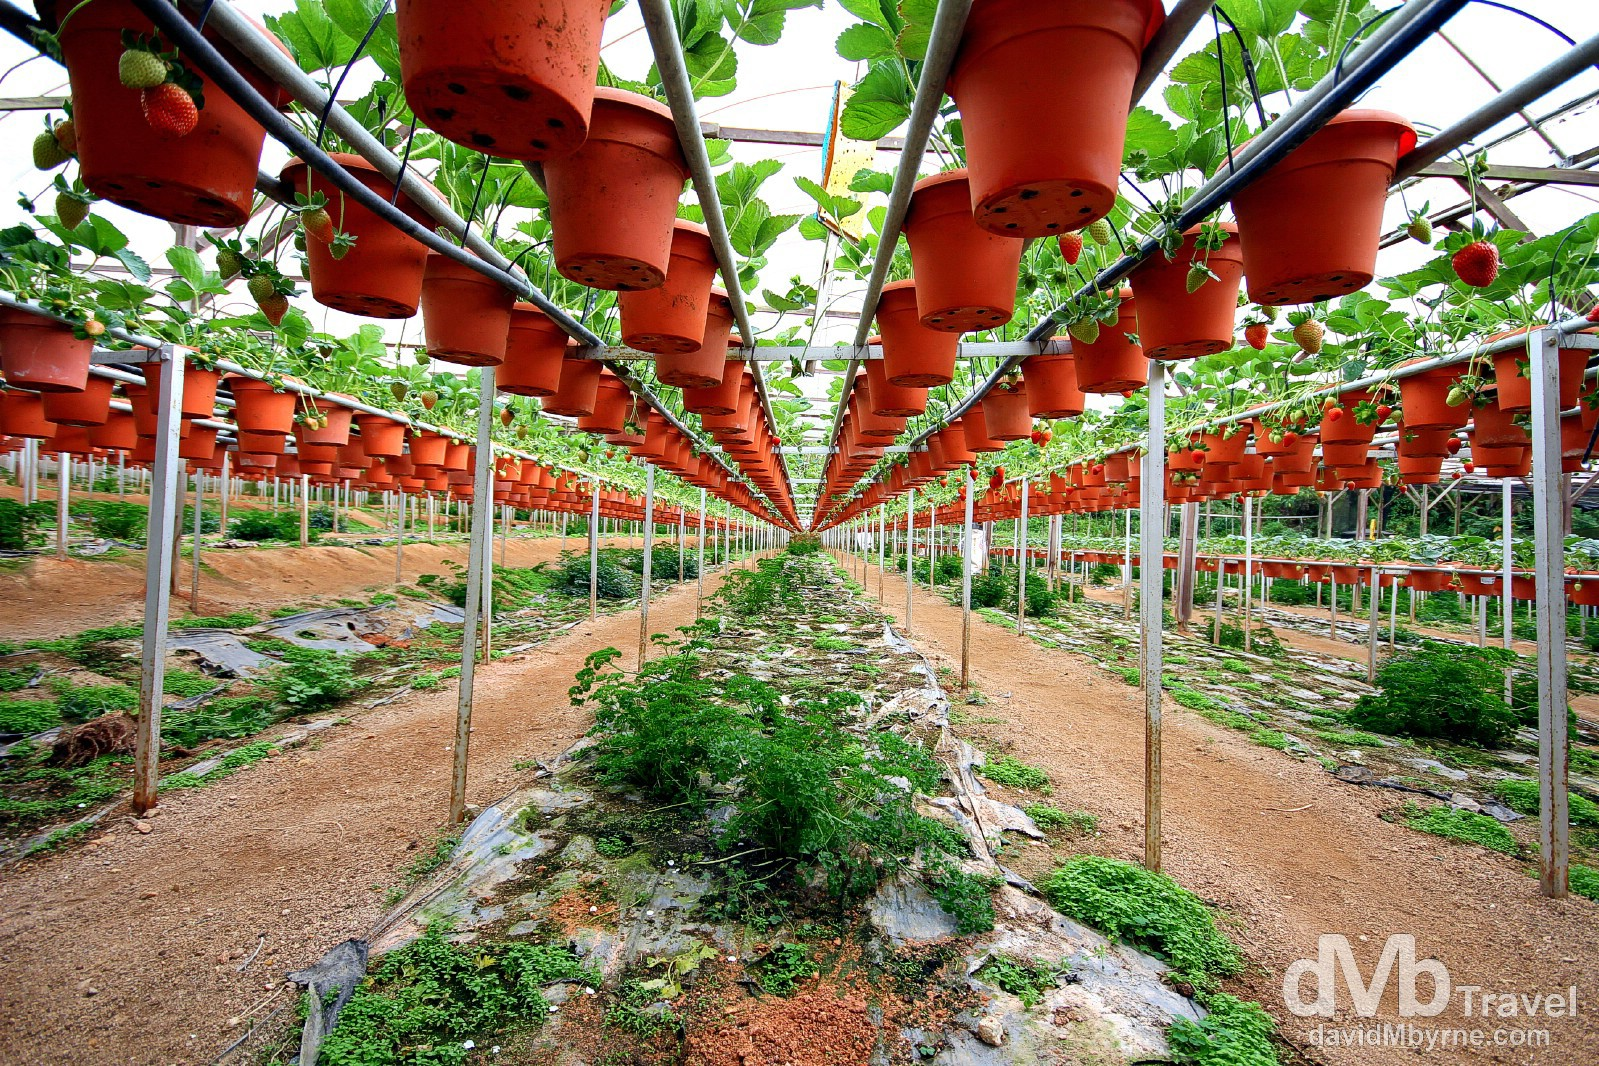 The Big Red Strawberry Farm, Cameron Highlands, Malaysia. March 26th 2012.